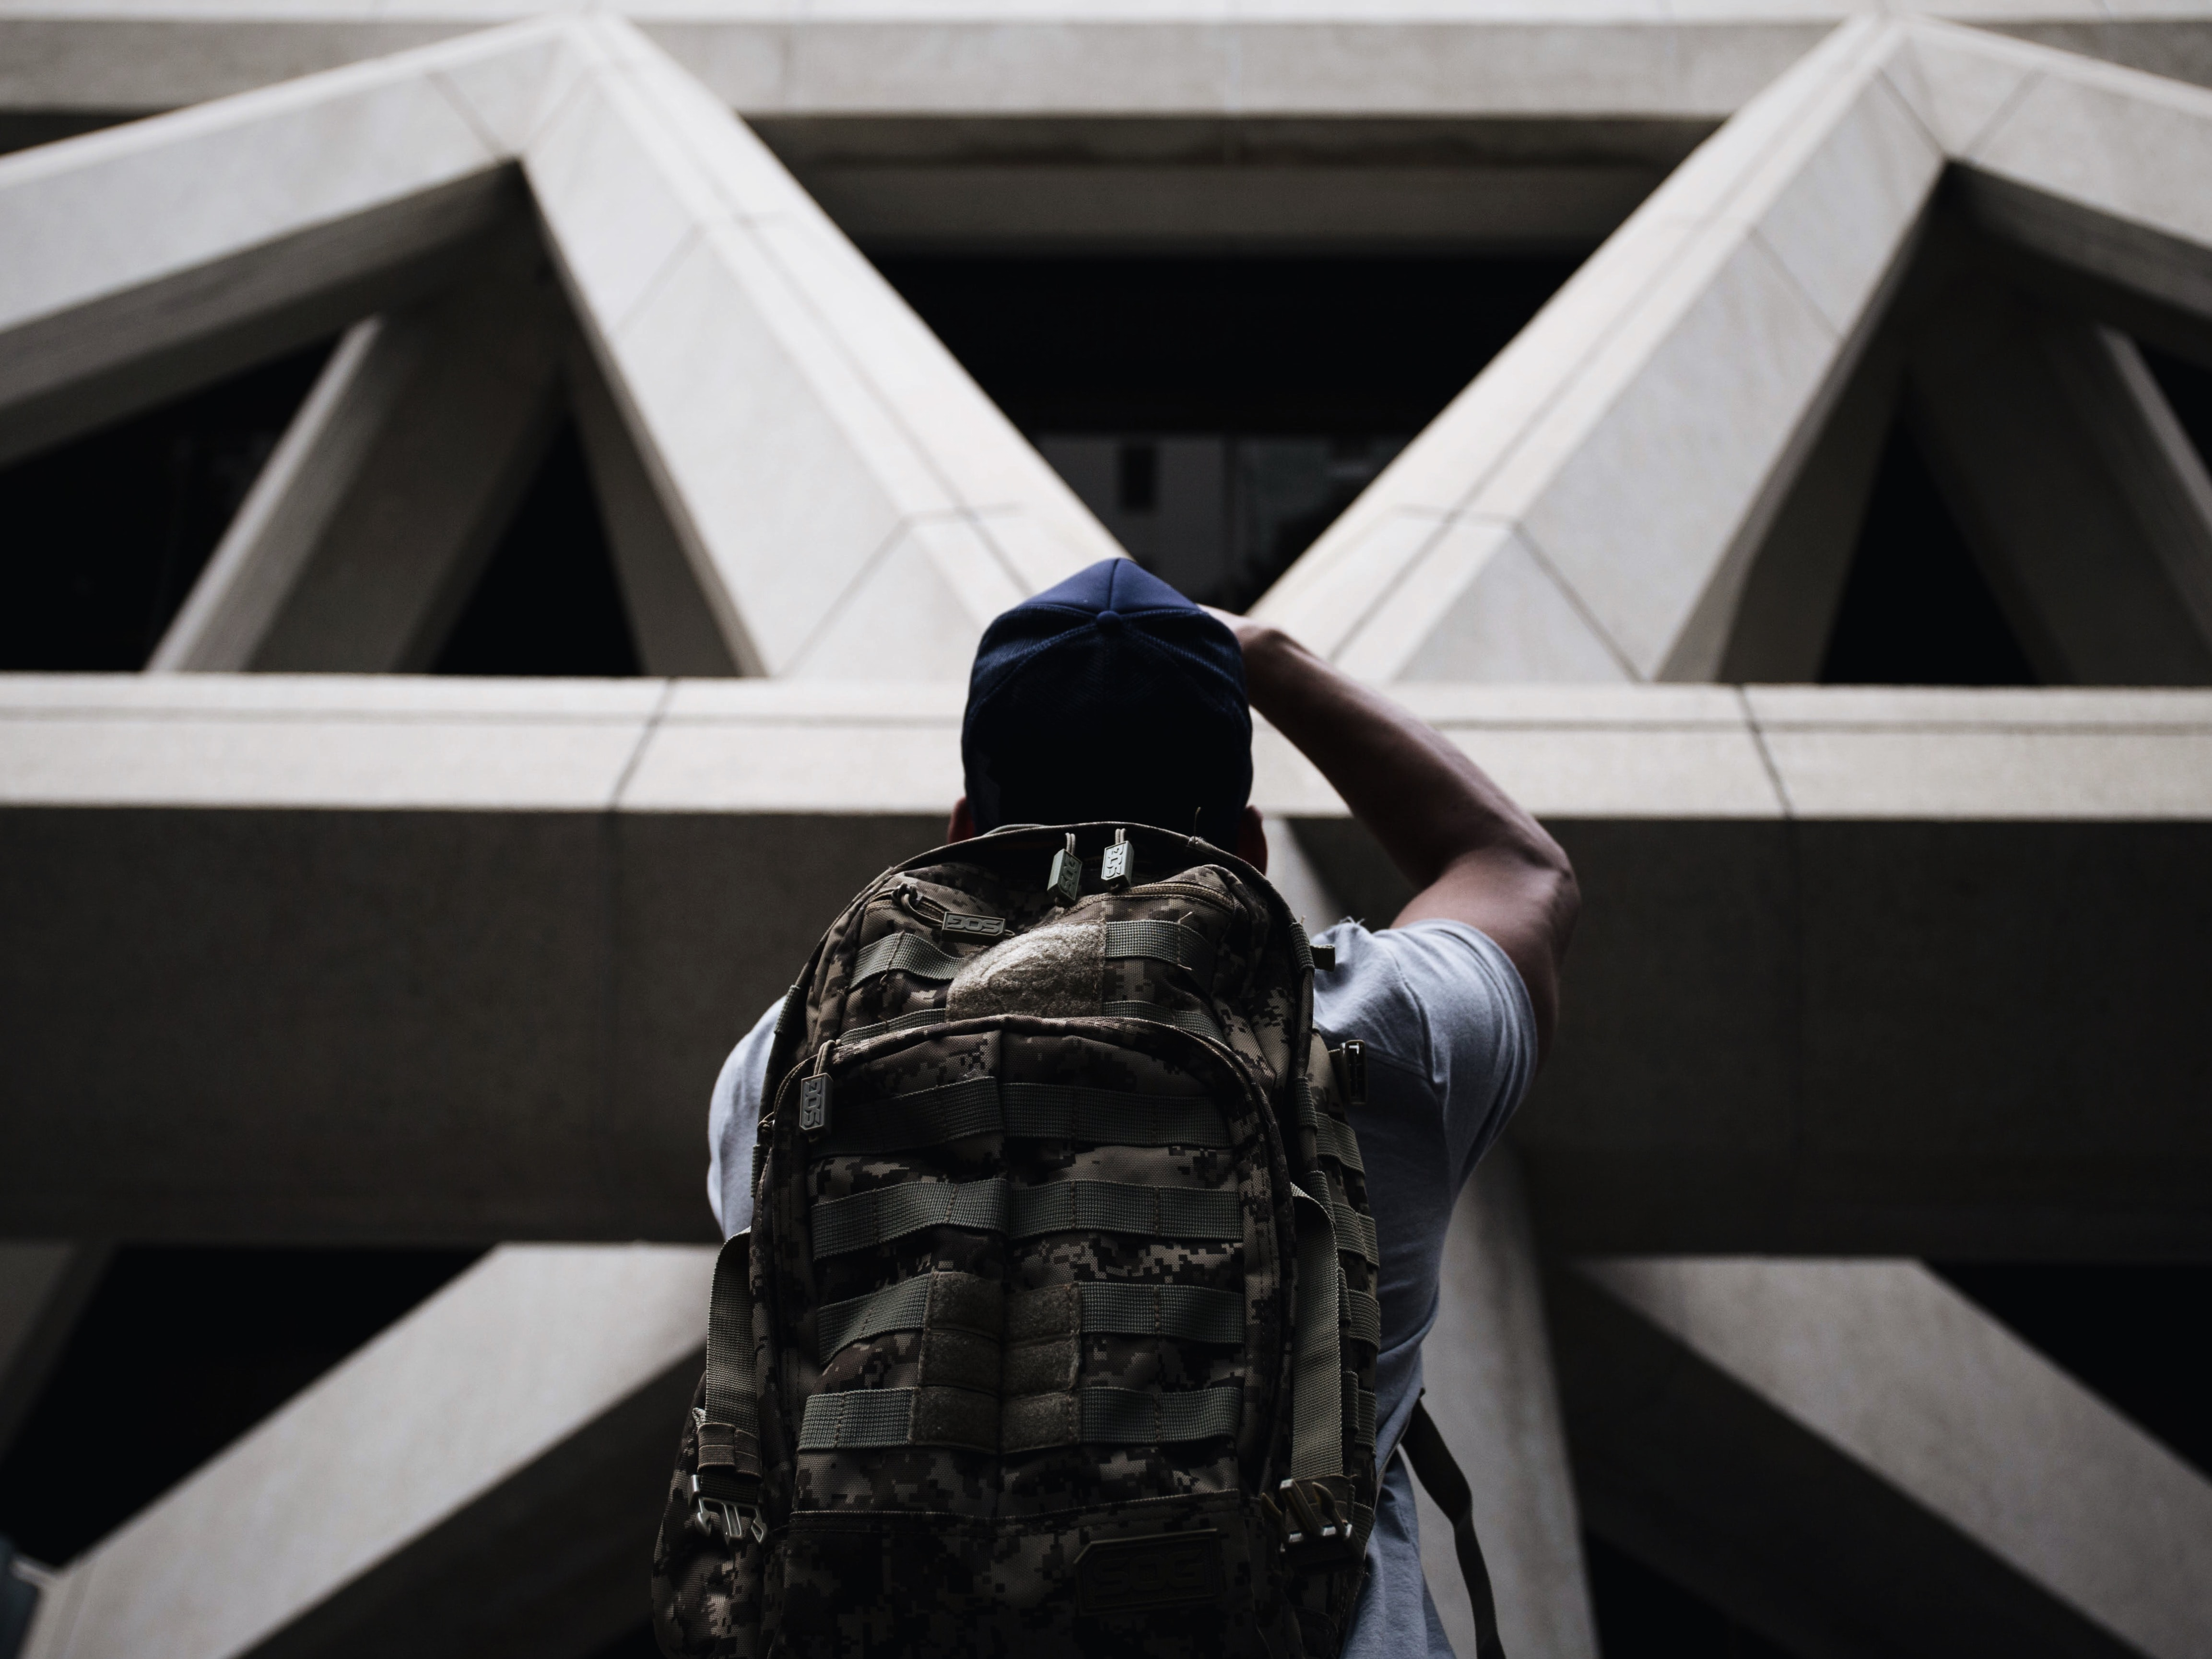 person wearing shirt and hiking bag looking in front of grey concrete structure while standing during daytime